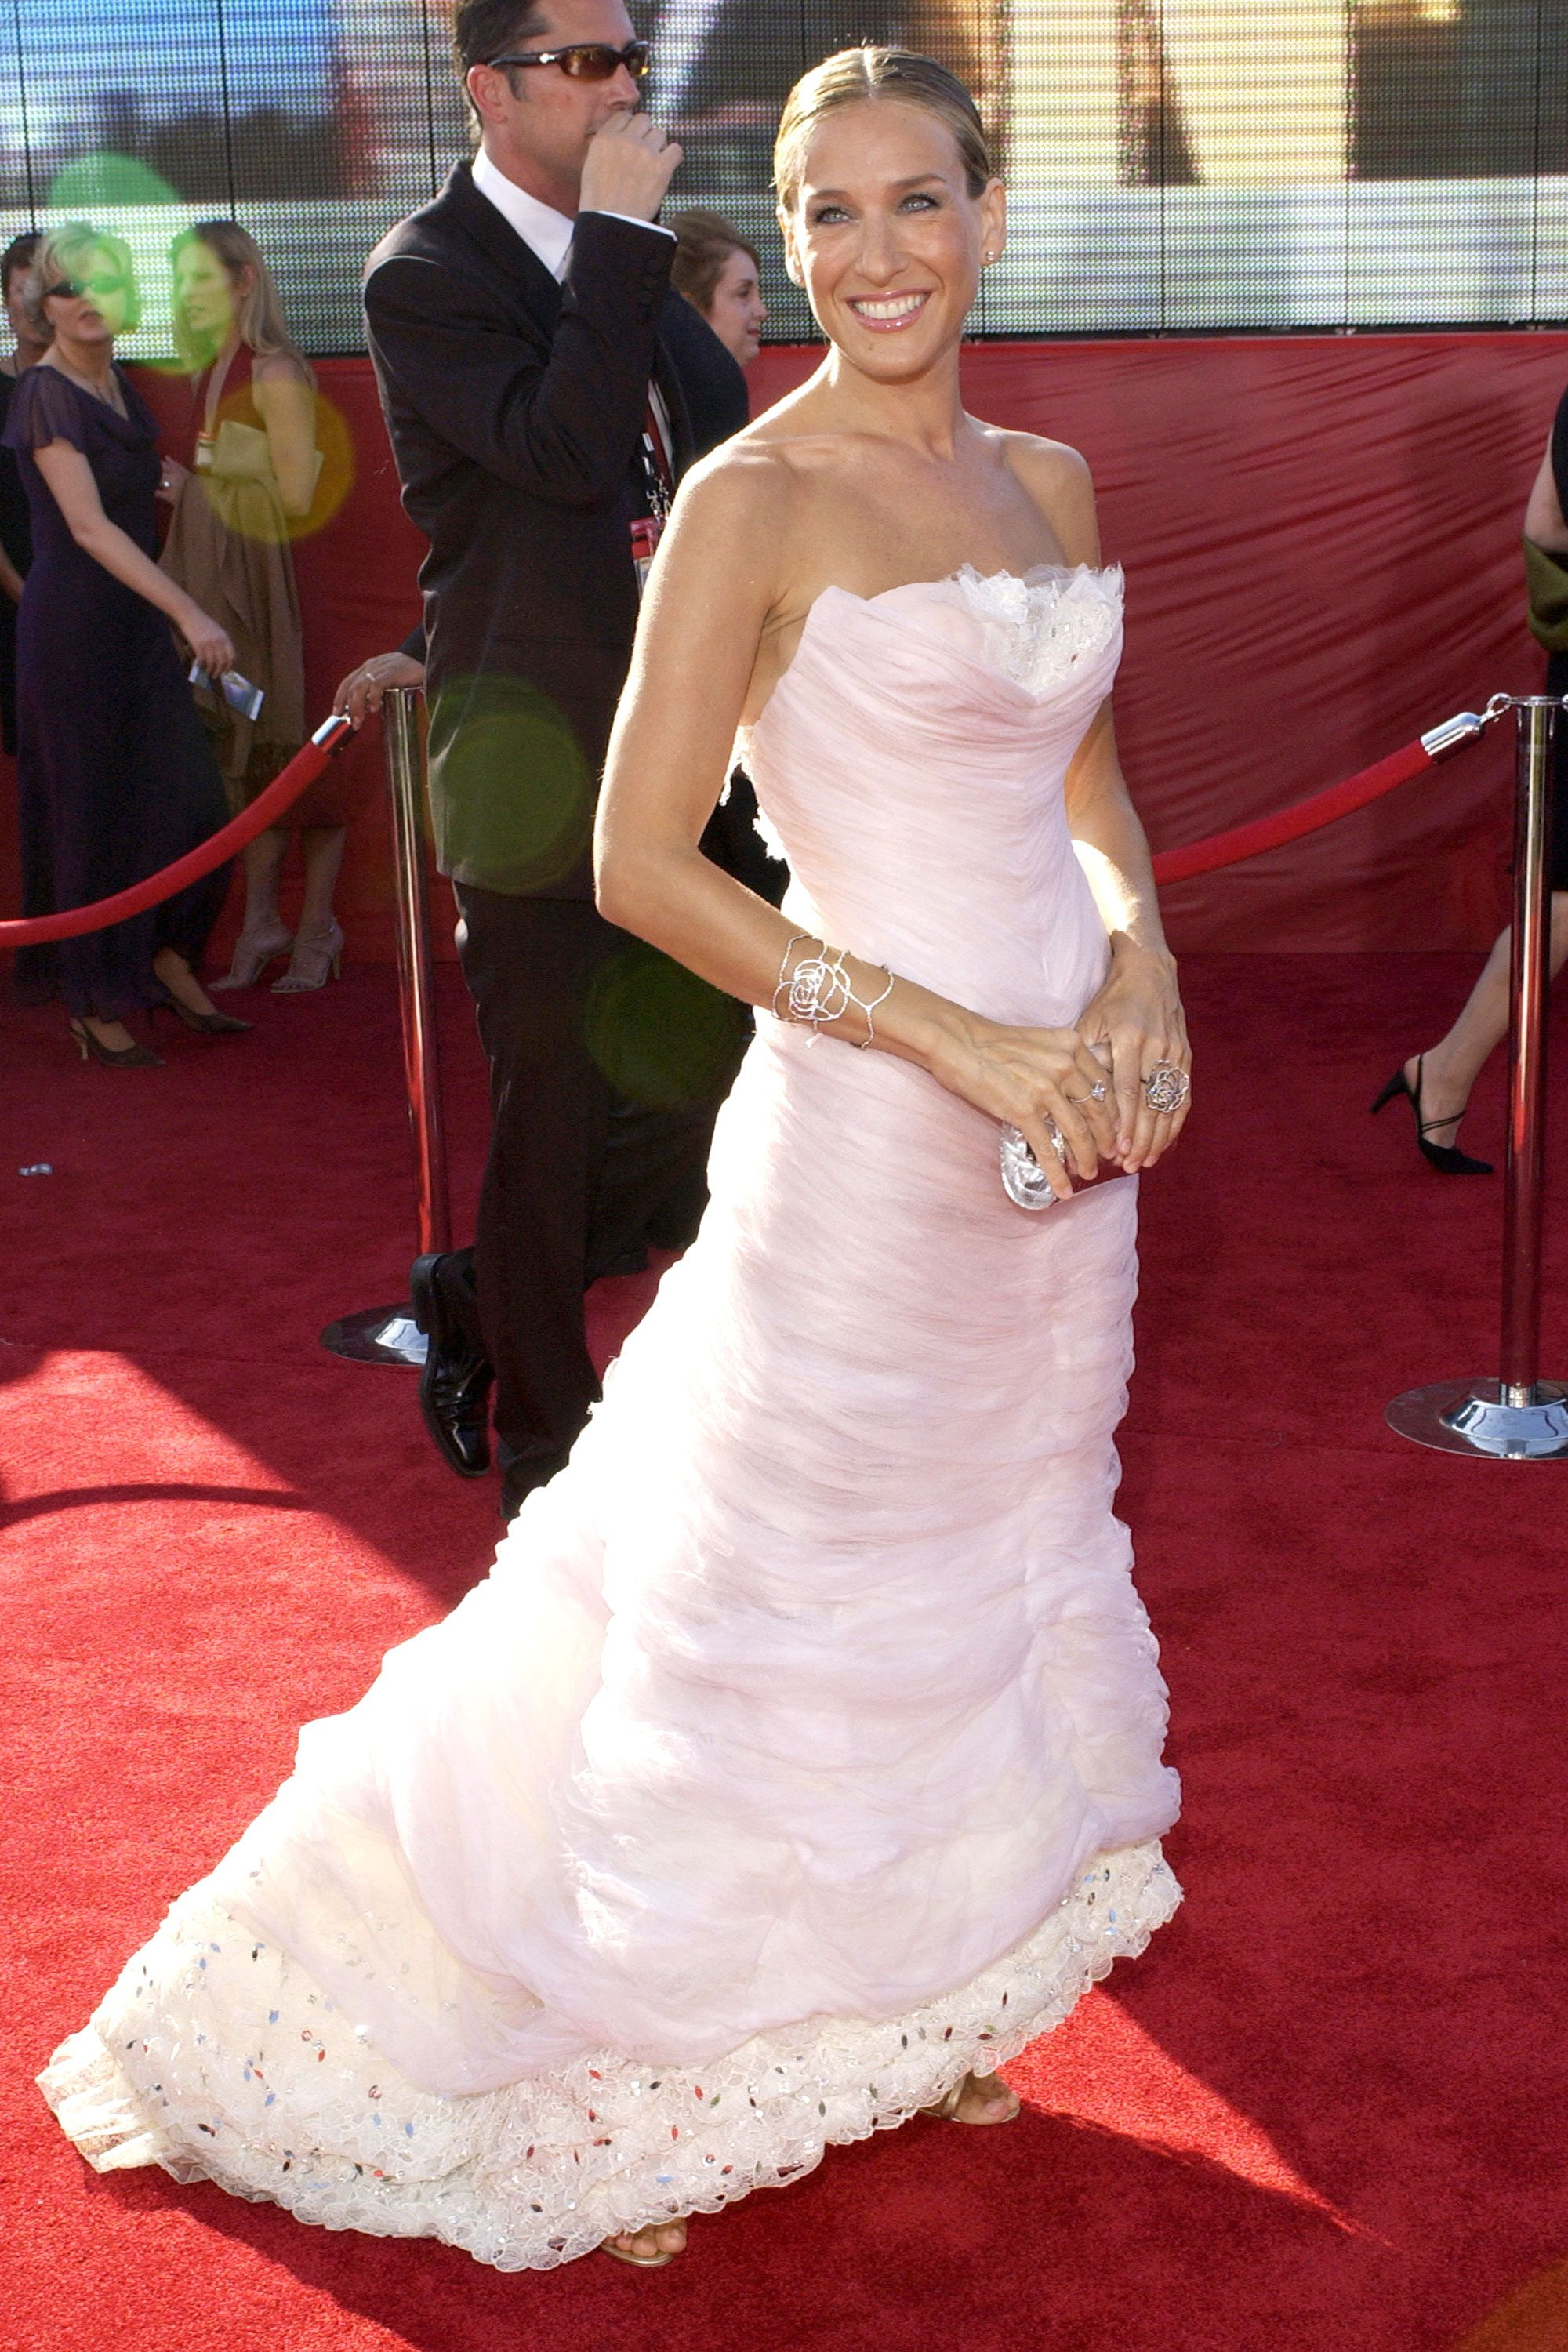 Sarah Jessica Parker In Chanel At 2003 Academy Awards Like A Cloud Of Pink